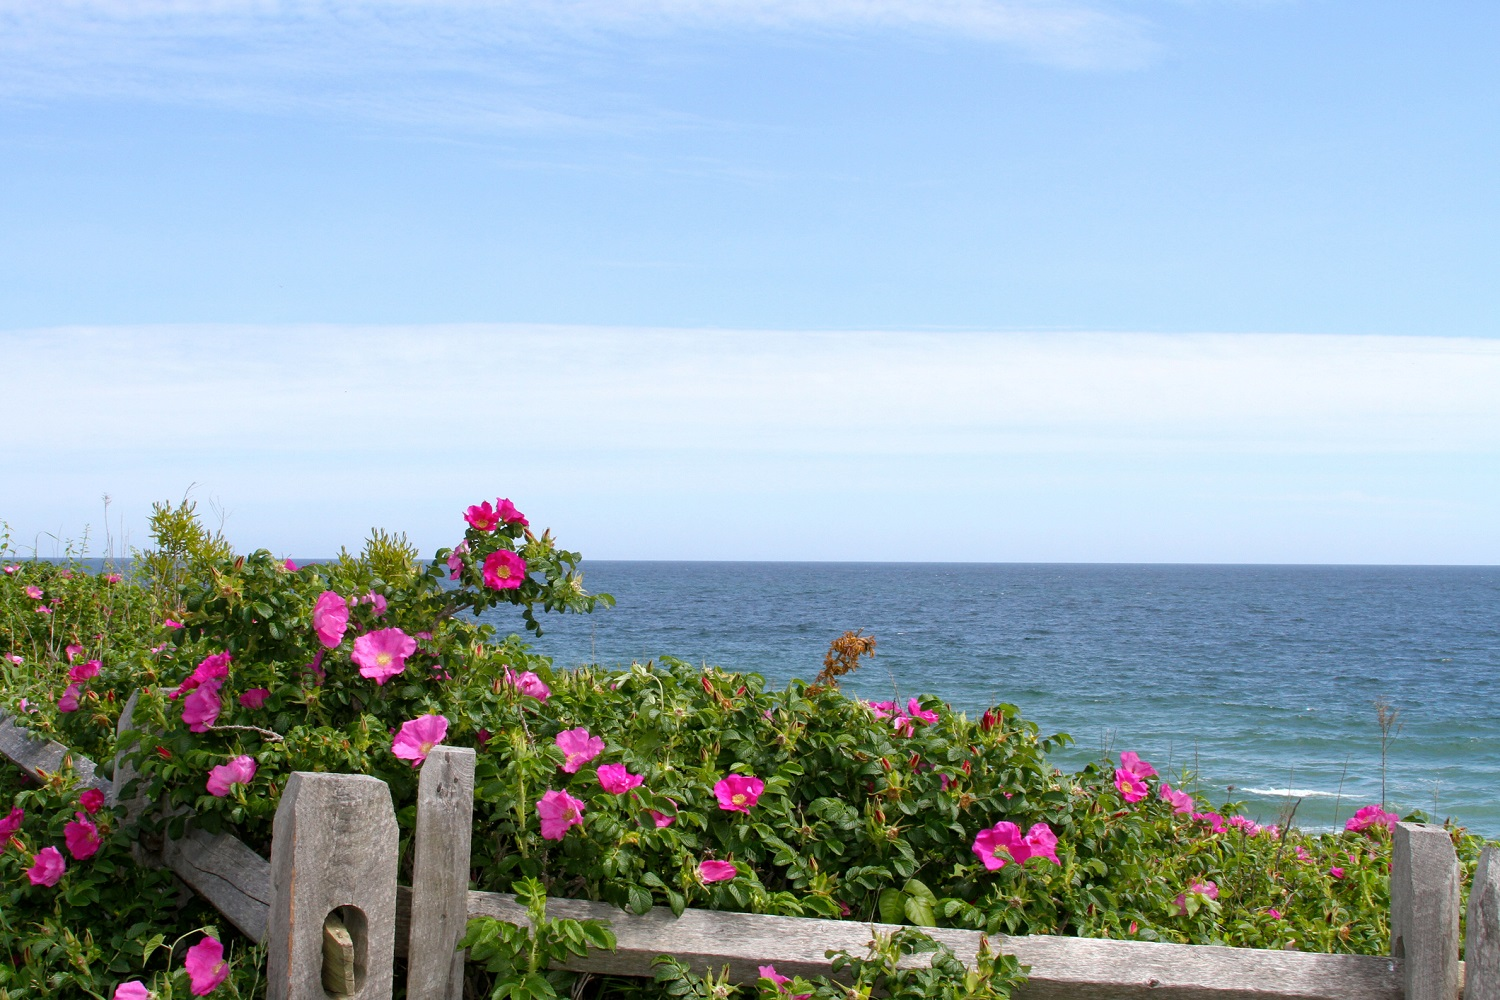 Beach roses growing wild on the New England coast